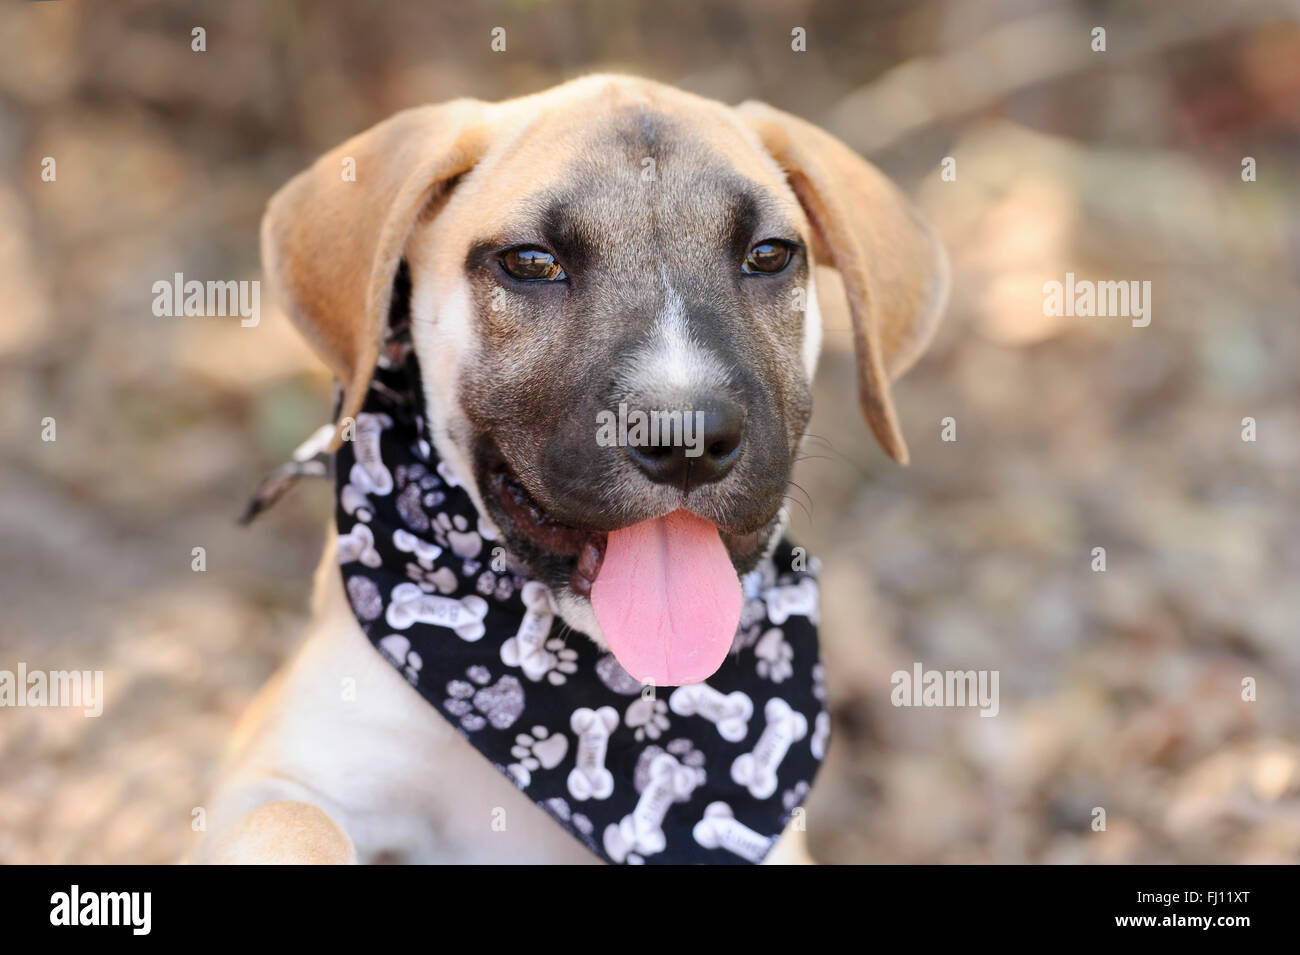 Happy dog is a white happy looking dog with cute floppy ears and his adorable pink tongue and glowing brown eyes - Stock Image